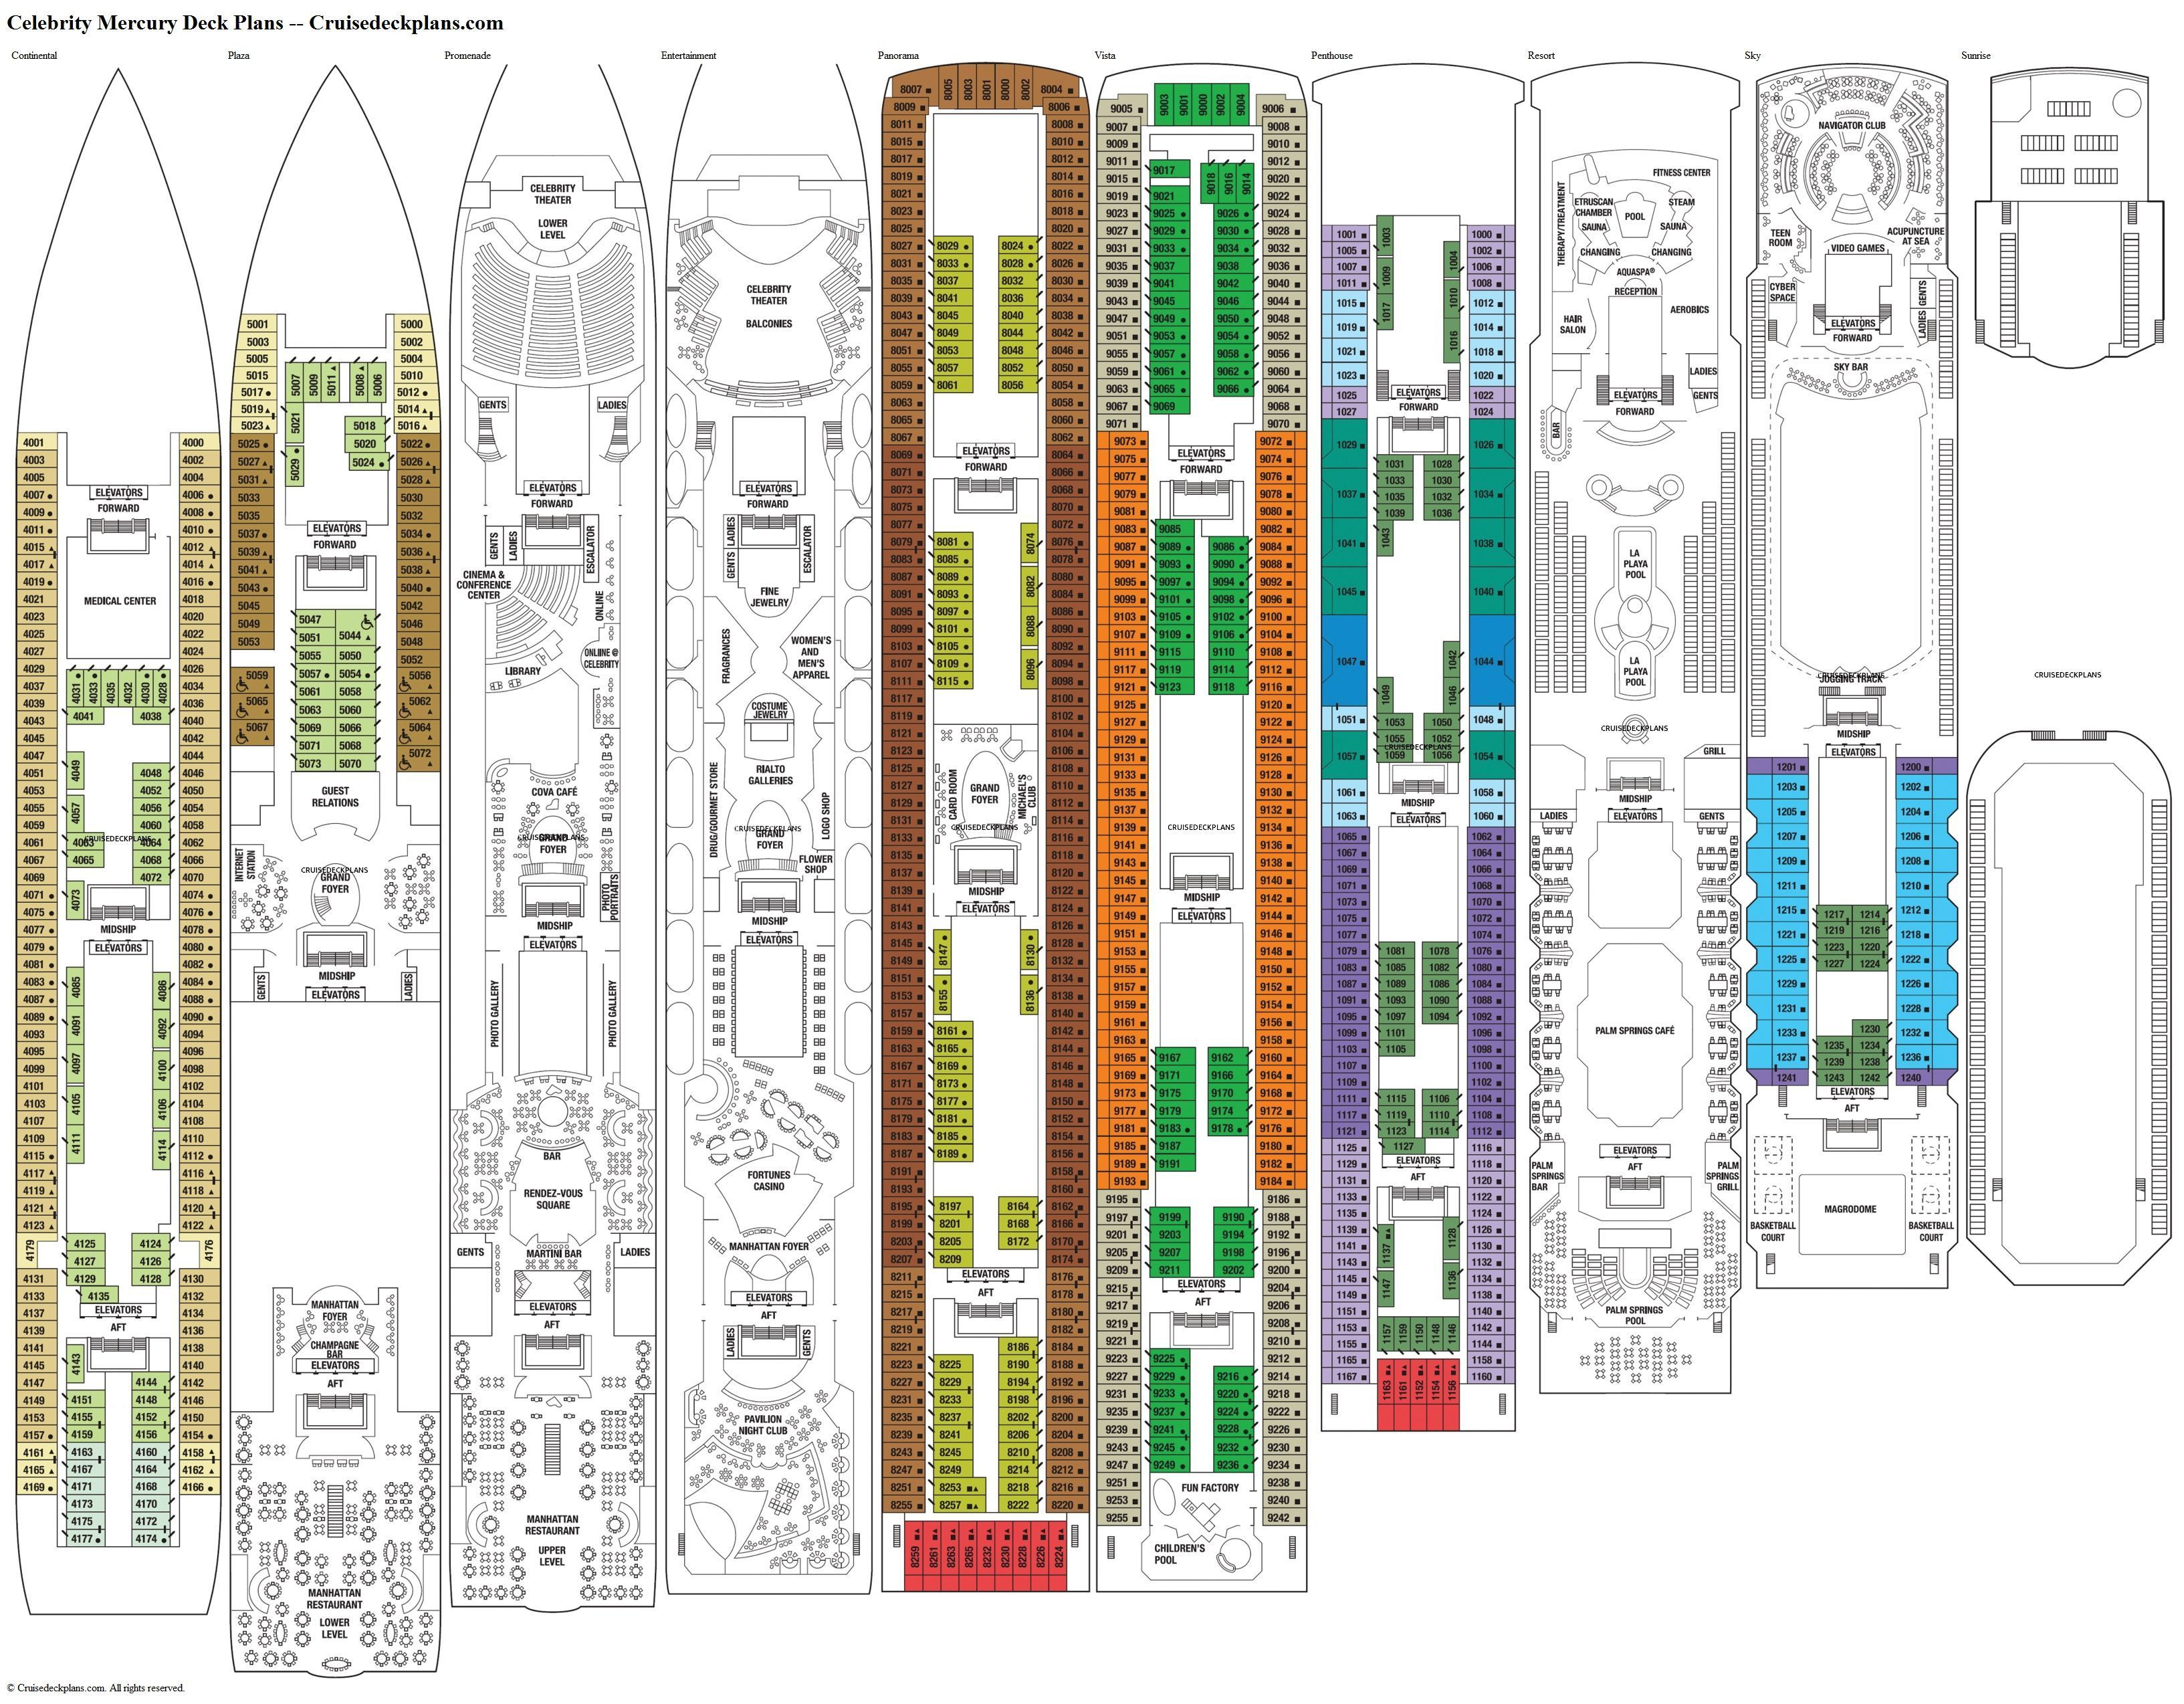 Celebrity Constellation Deck Plans, Ship Layout ...